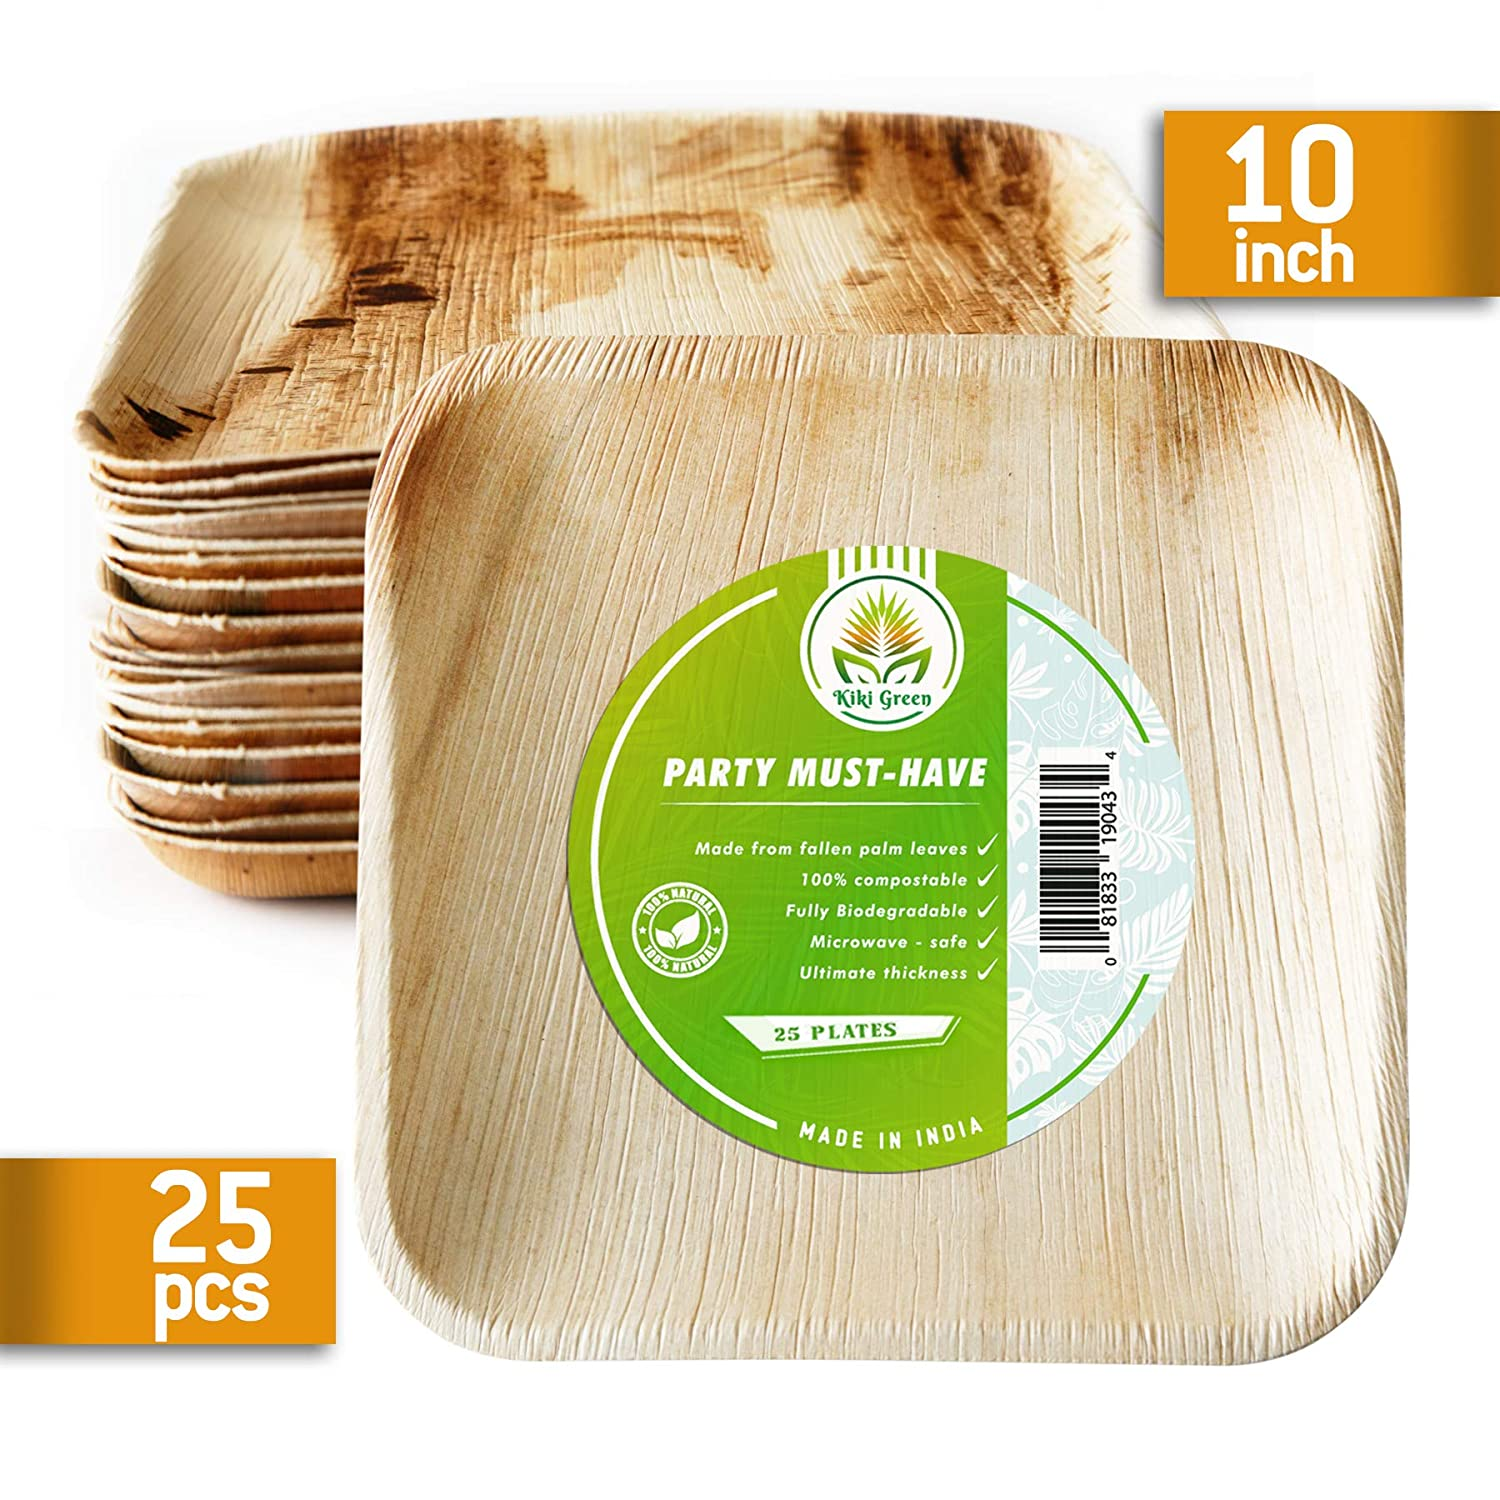 Compostable Plates 9 5 inch square 25pcs Palm Leaf Plates-our Biodegradable  Plates Are Top Quality, We Use Eco Friendly Products For Party